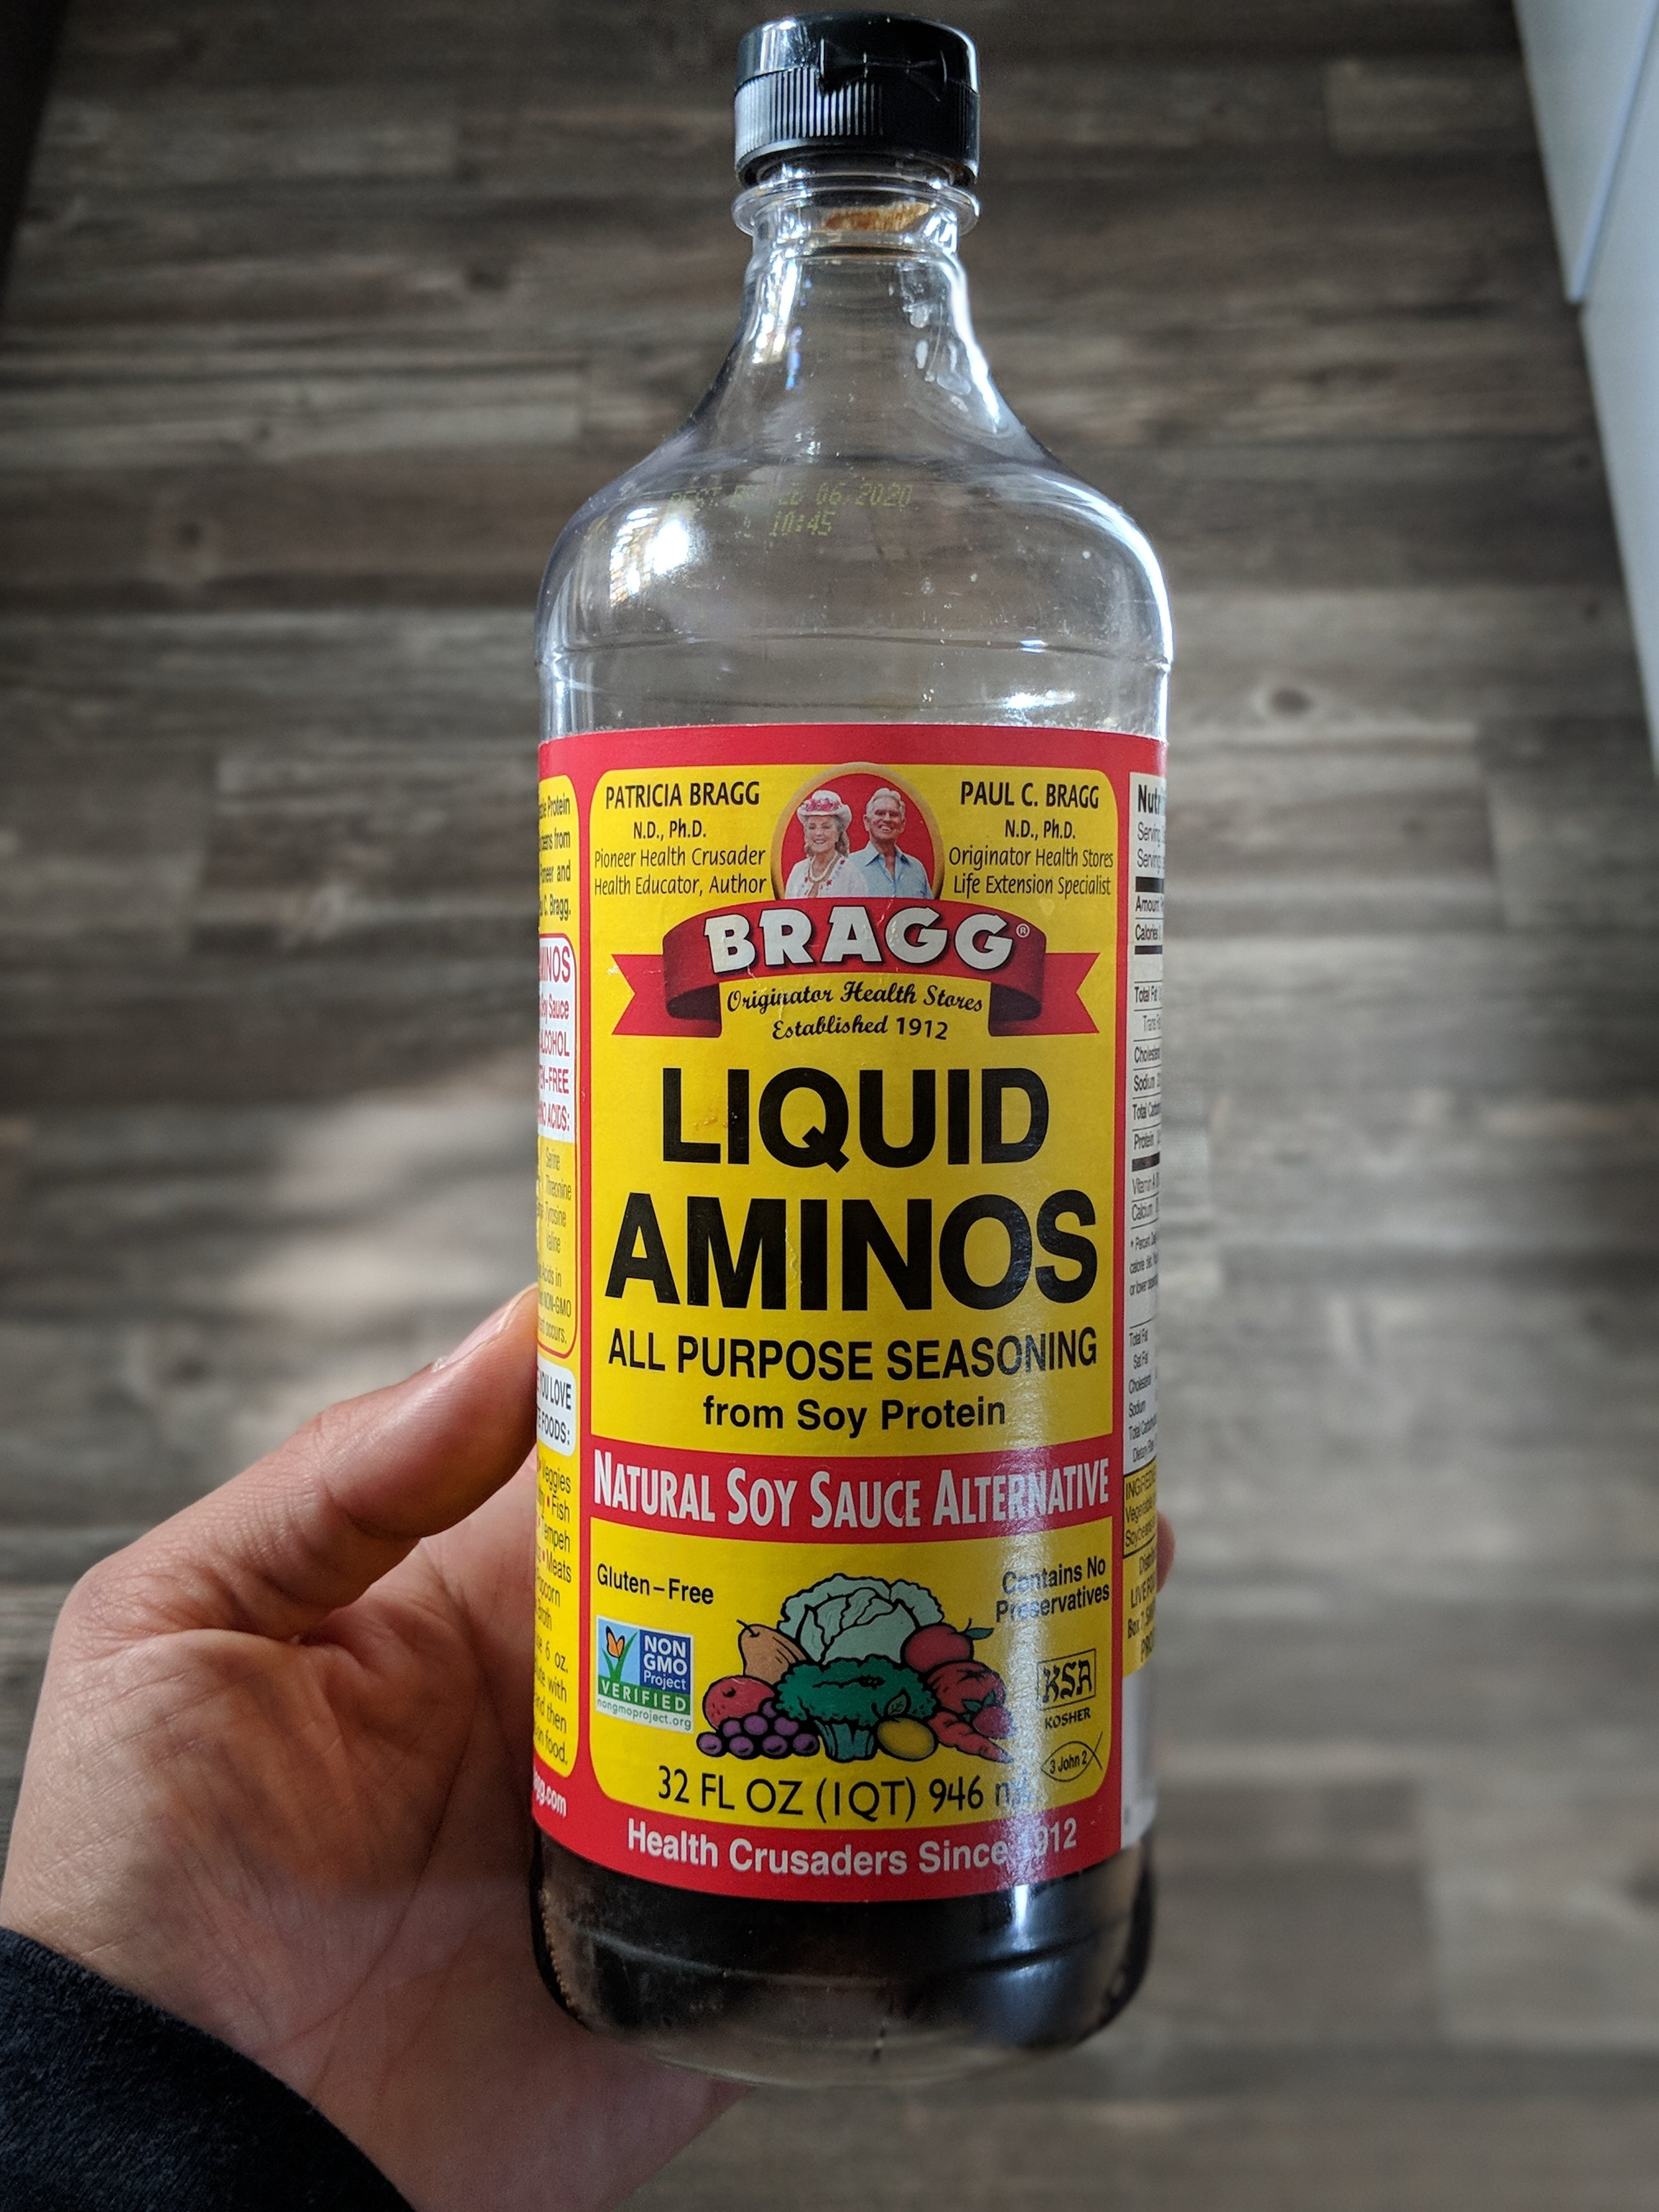 Liquid Aminos - An alternative to soy sauce. We use it because it tastes better to us, and full of amino acids.